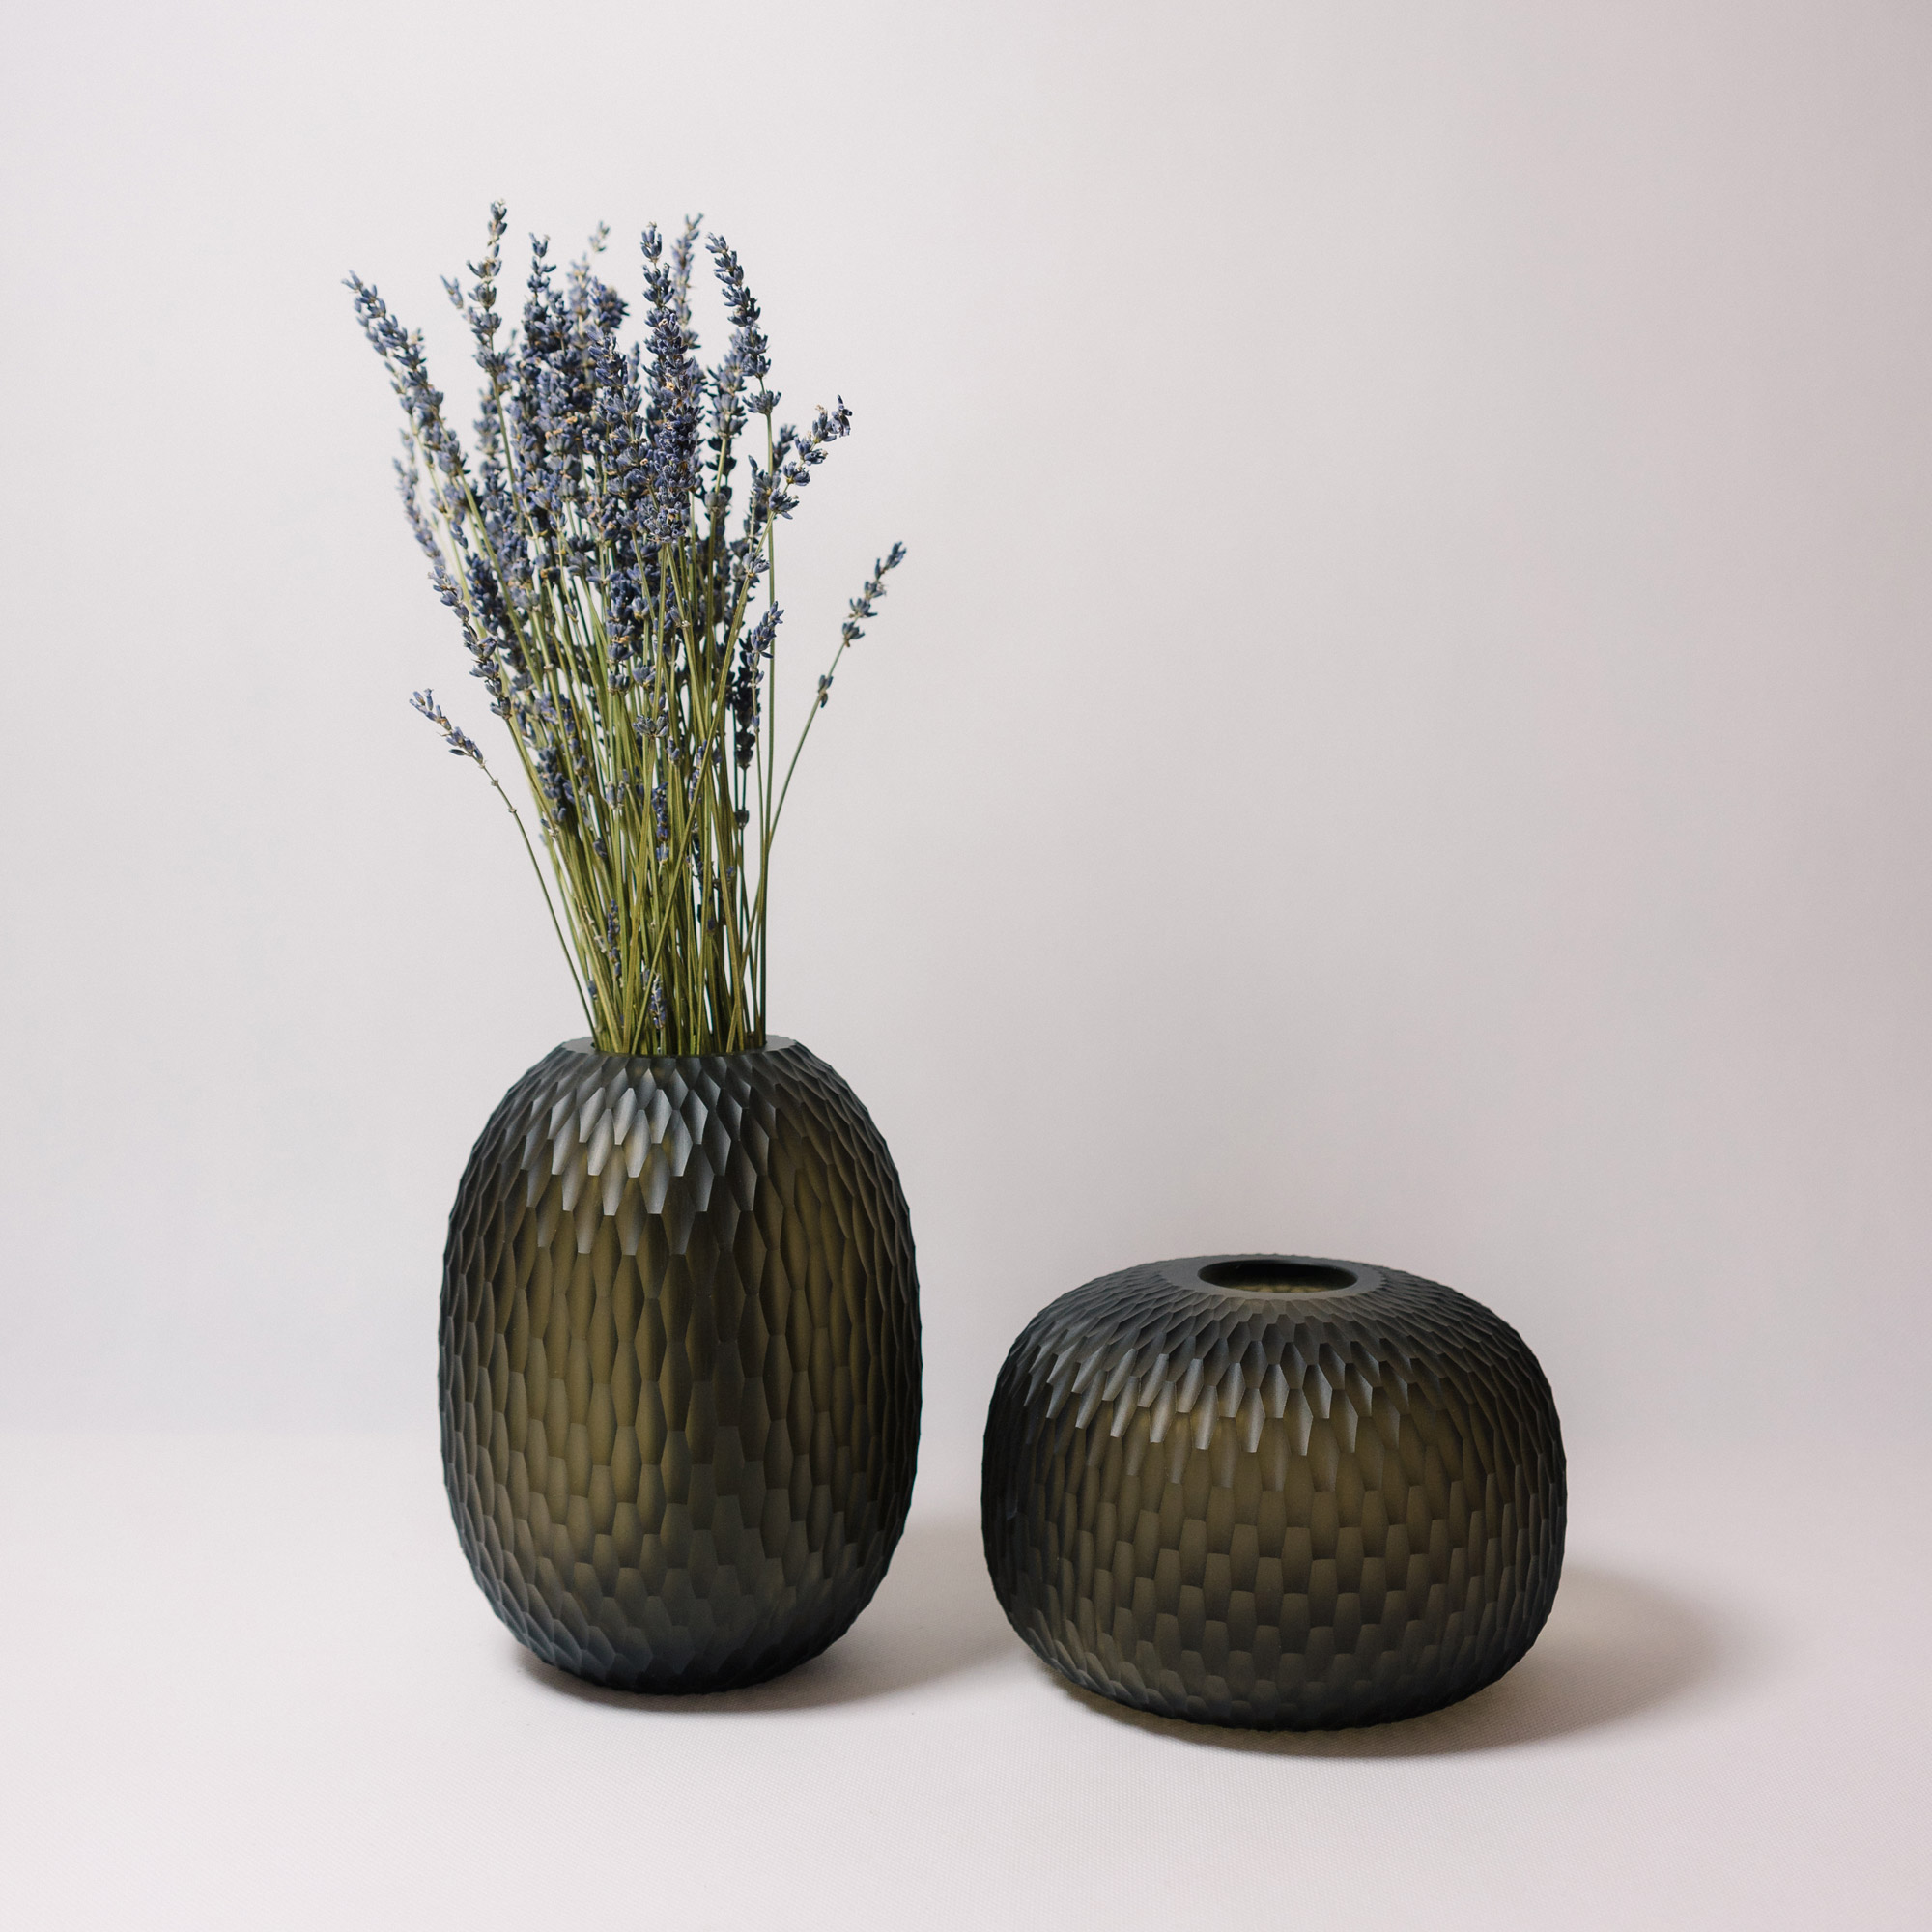 Handcut bohemian crystal vase by Ruckl, cigar colour, decorated with lavender